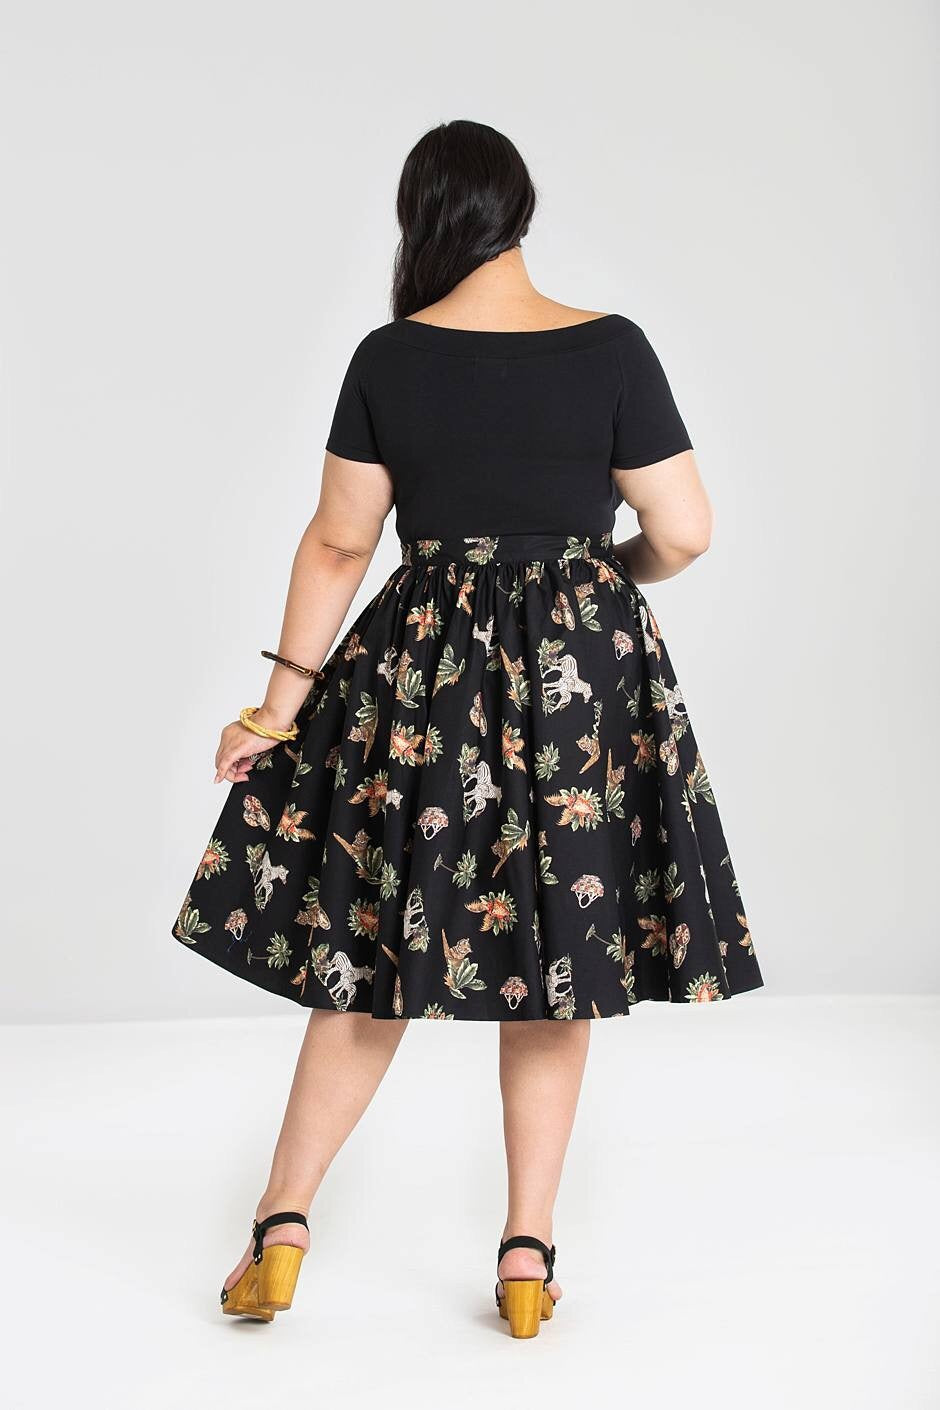 Messina 1950's Skirt by Hell Bunny